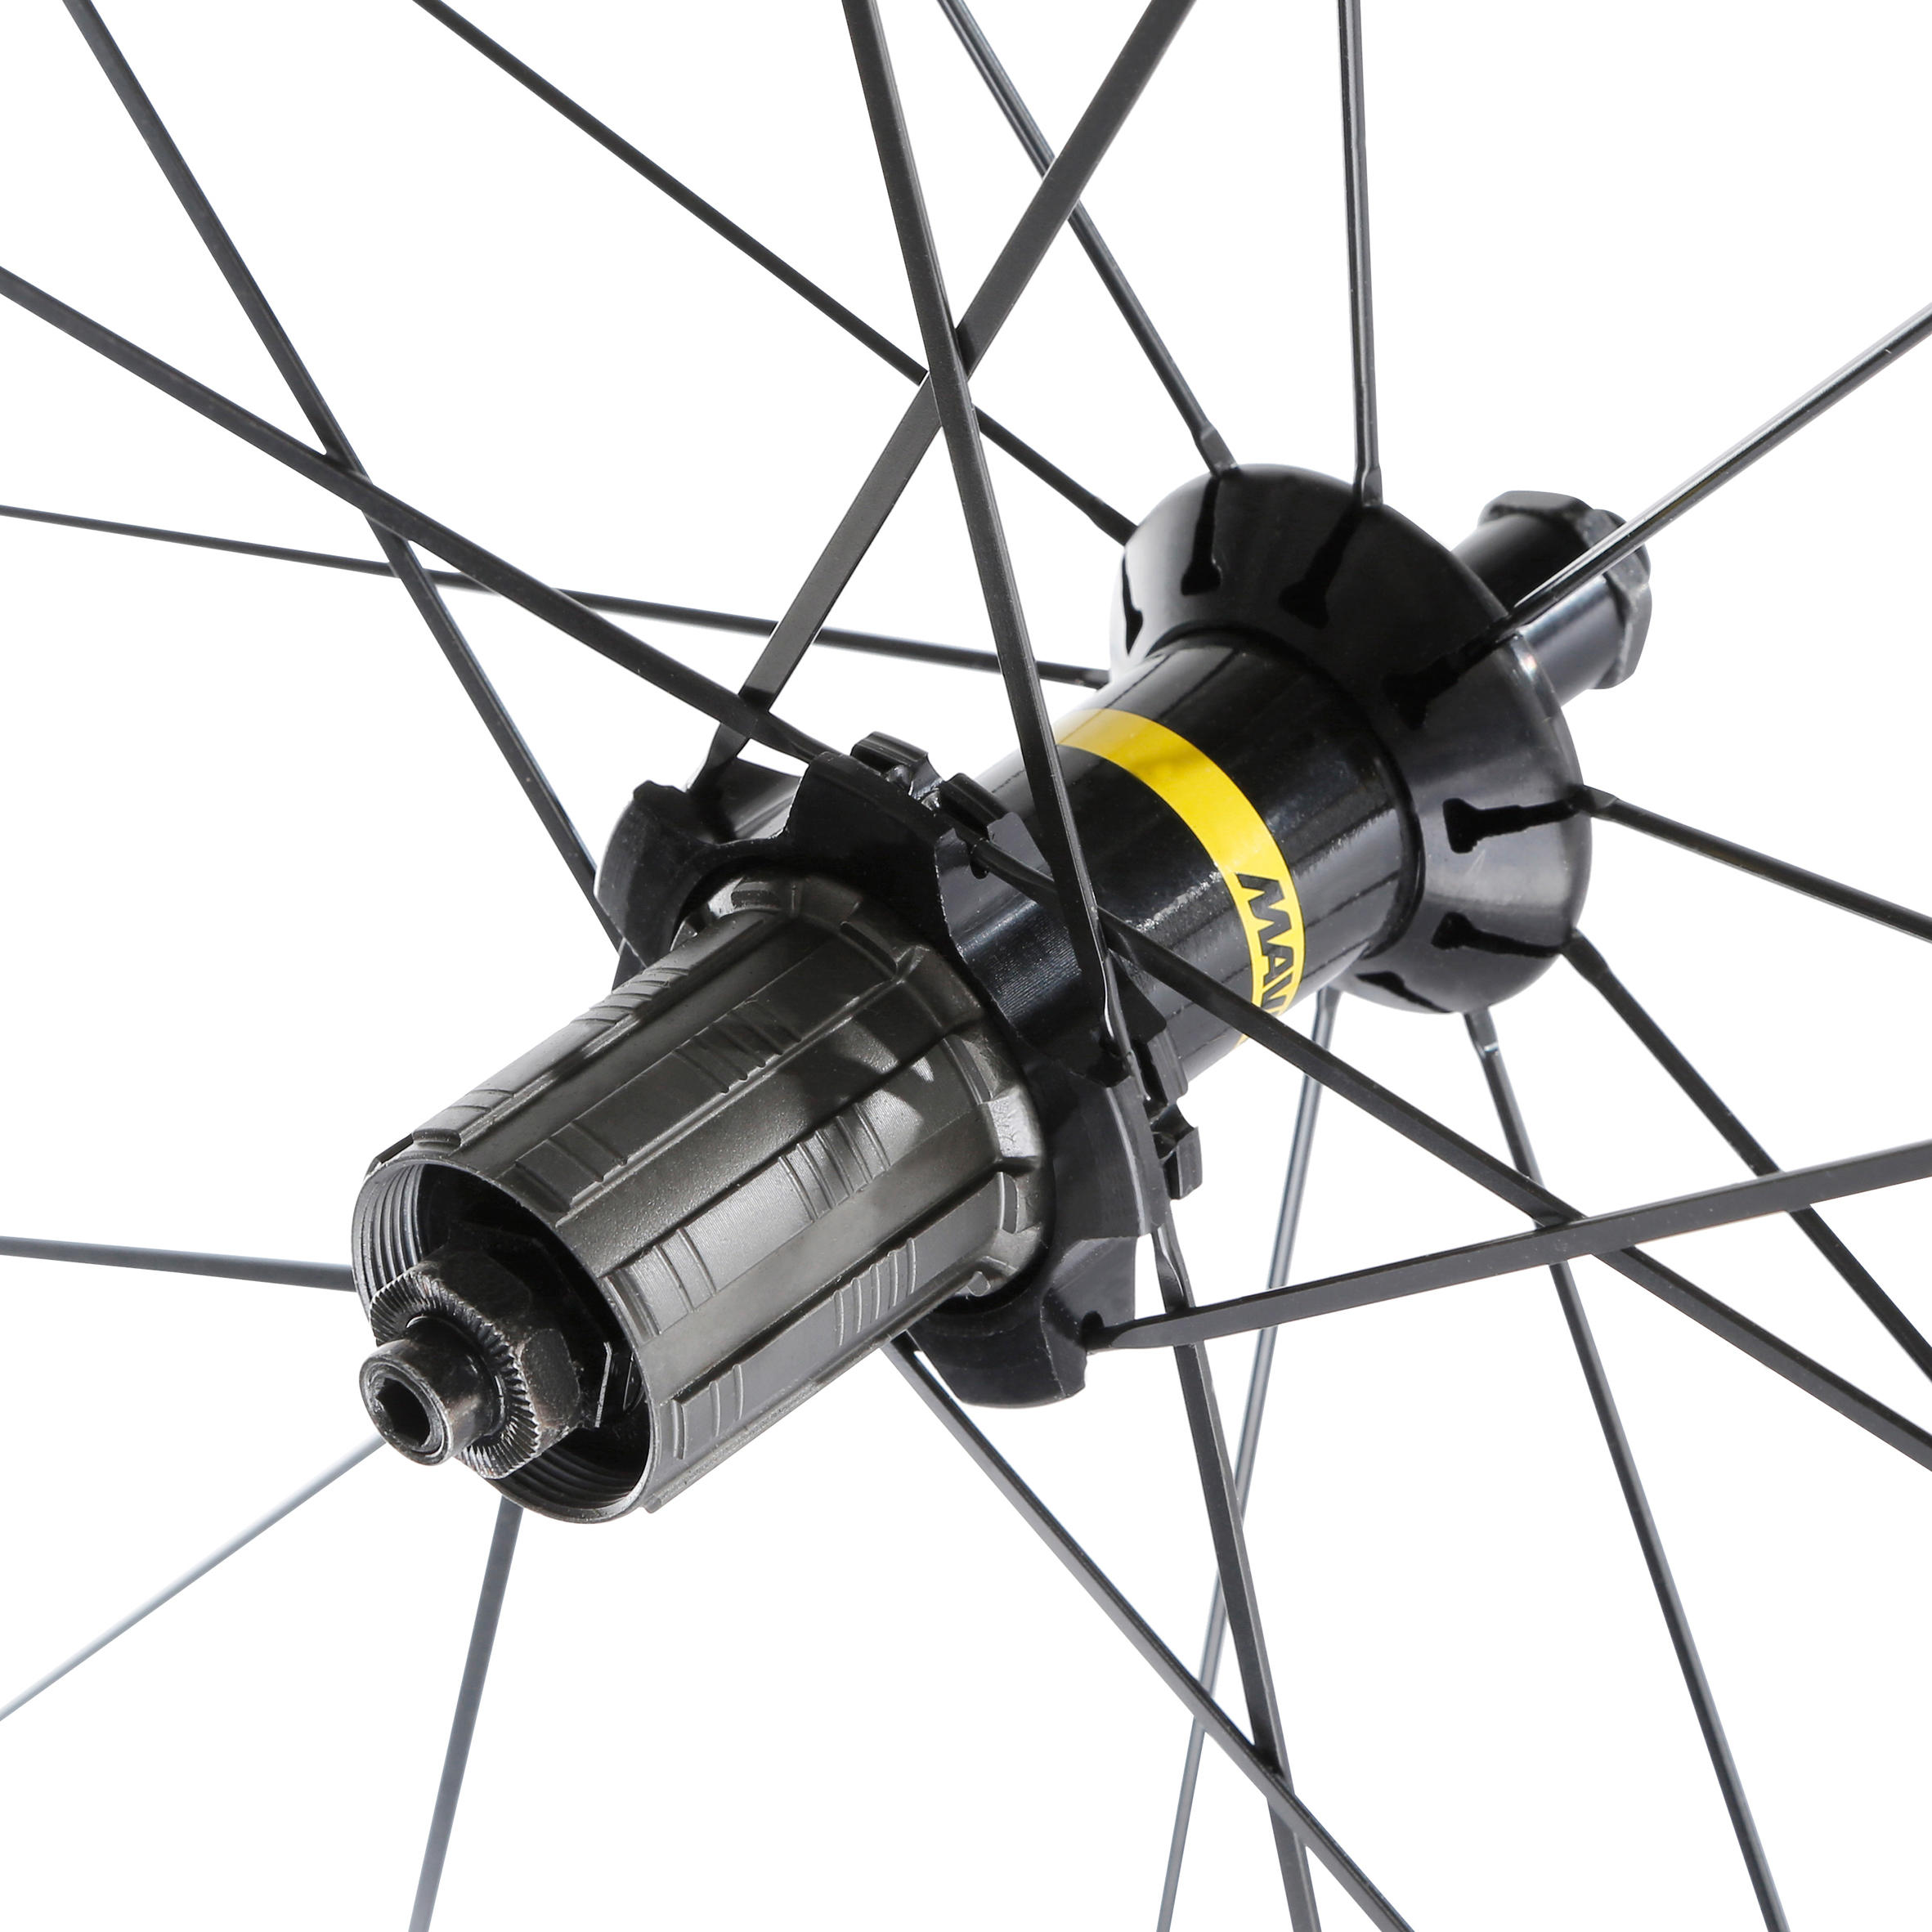 Velo Wts Paire Route De Mavic Aksium Roue Rs gy7bf6IvY